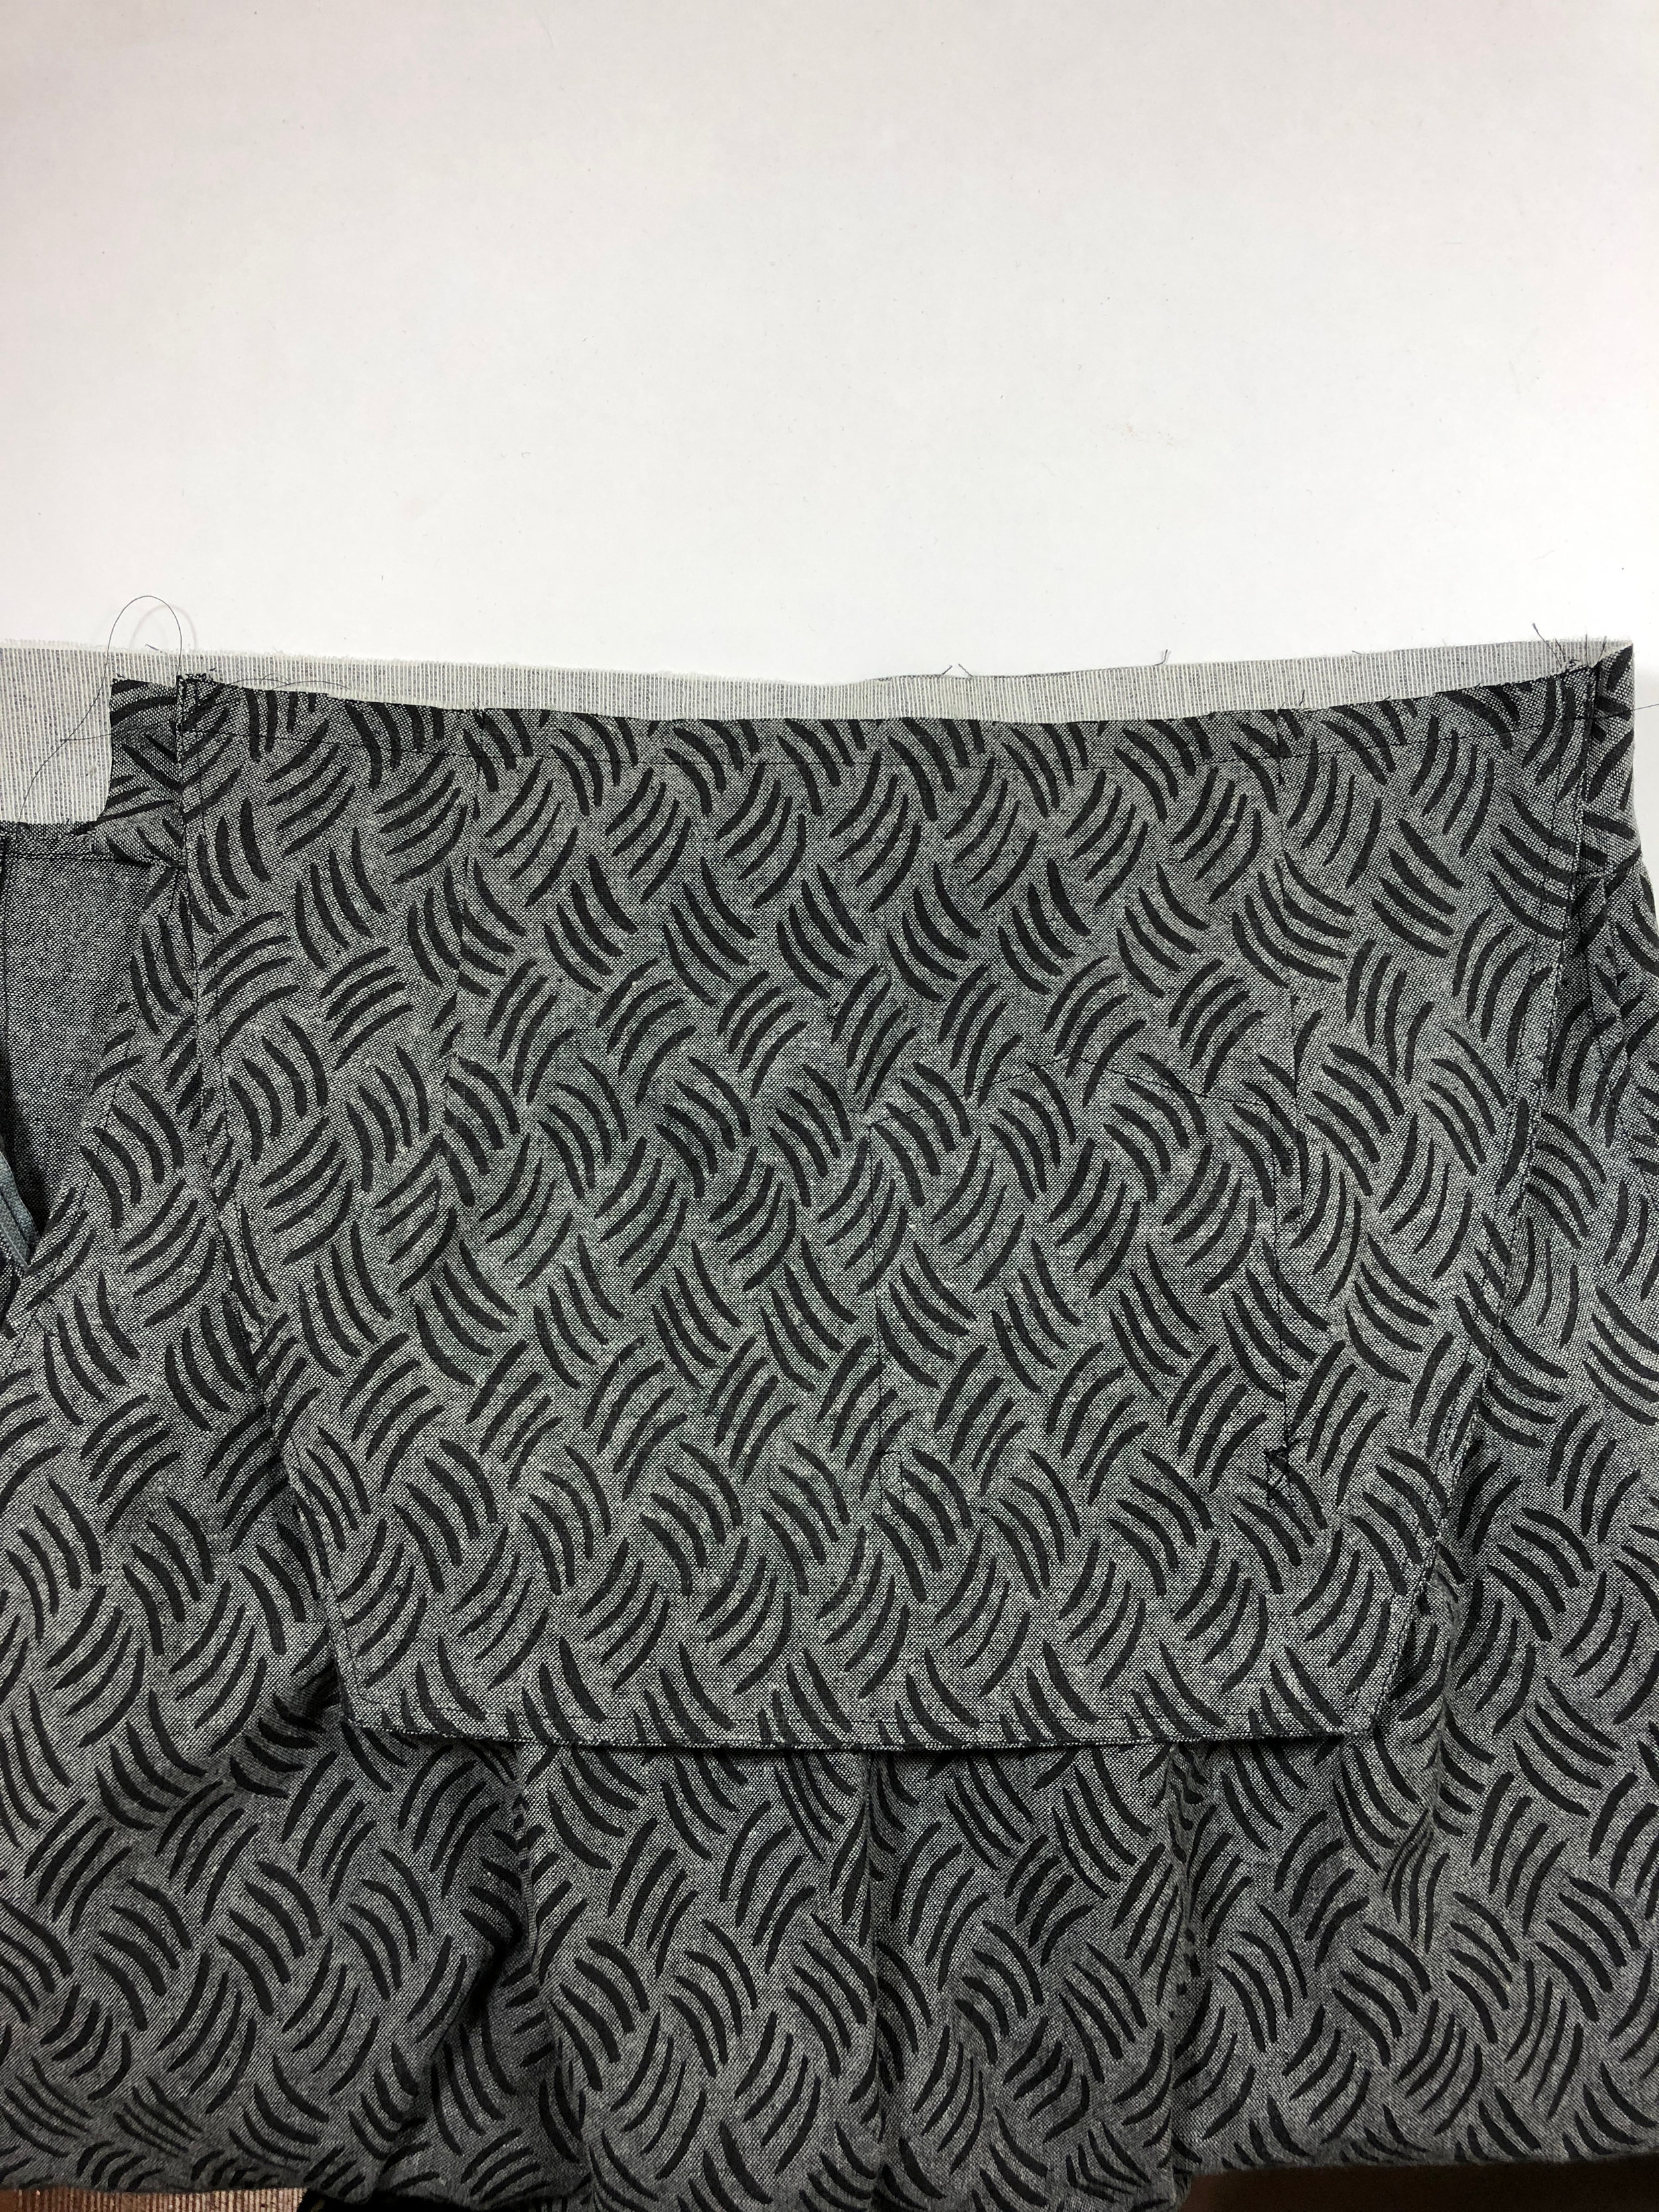 """47. Attach the bib to the top of the waistband, matching center notches. Stitch with 1/2"""" seam allowance.  Skip this step if you are making the Trousers - View B."""